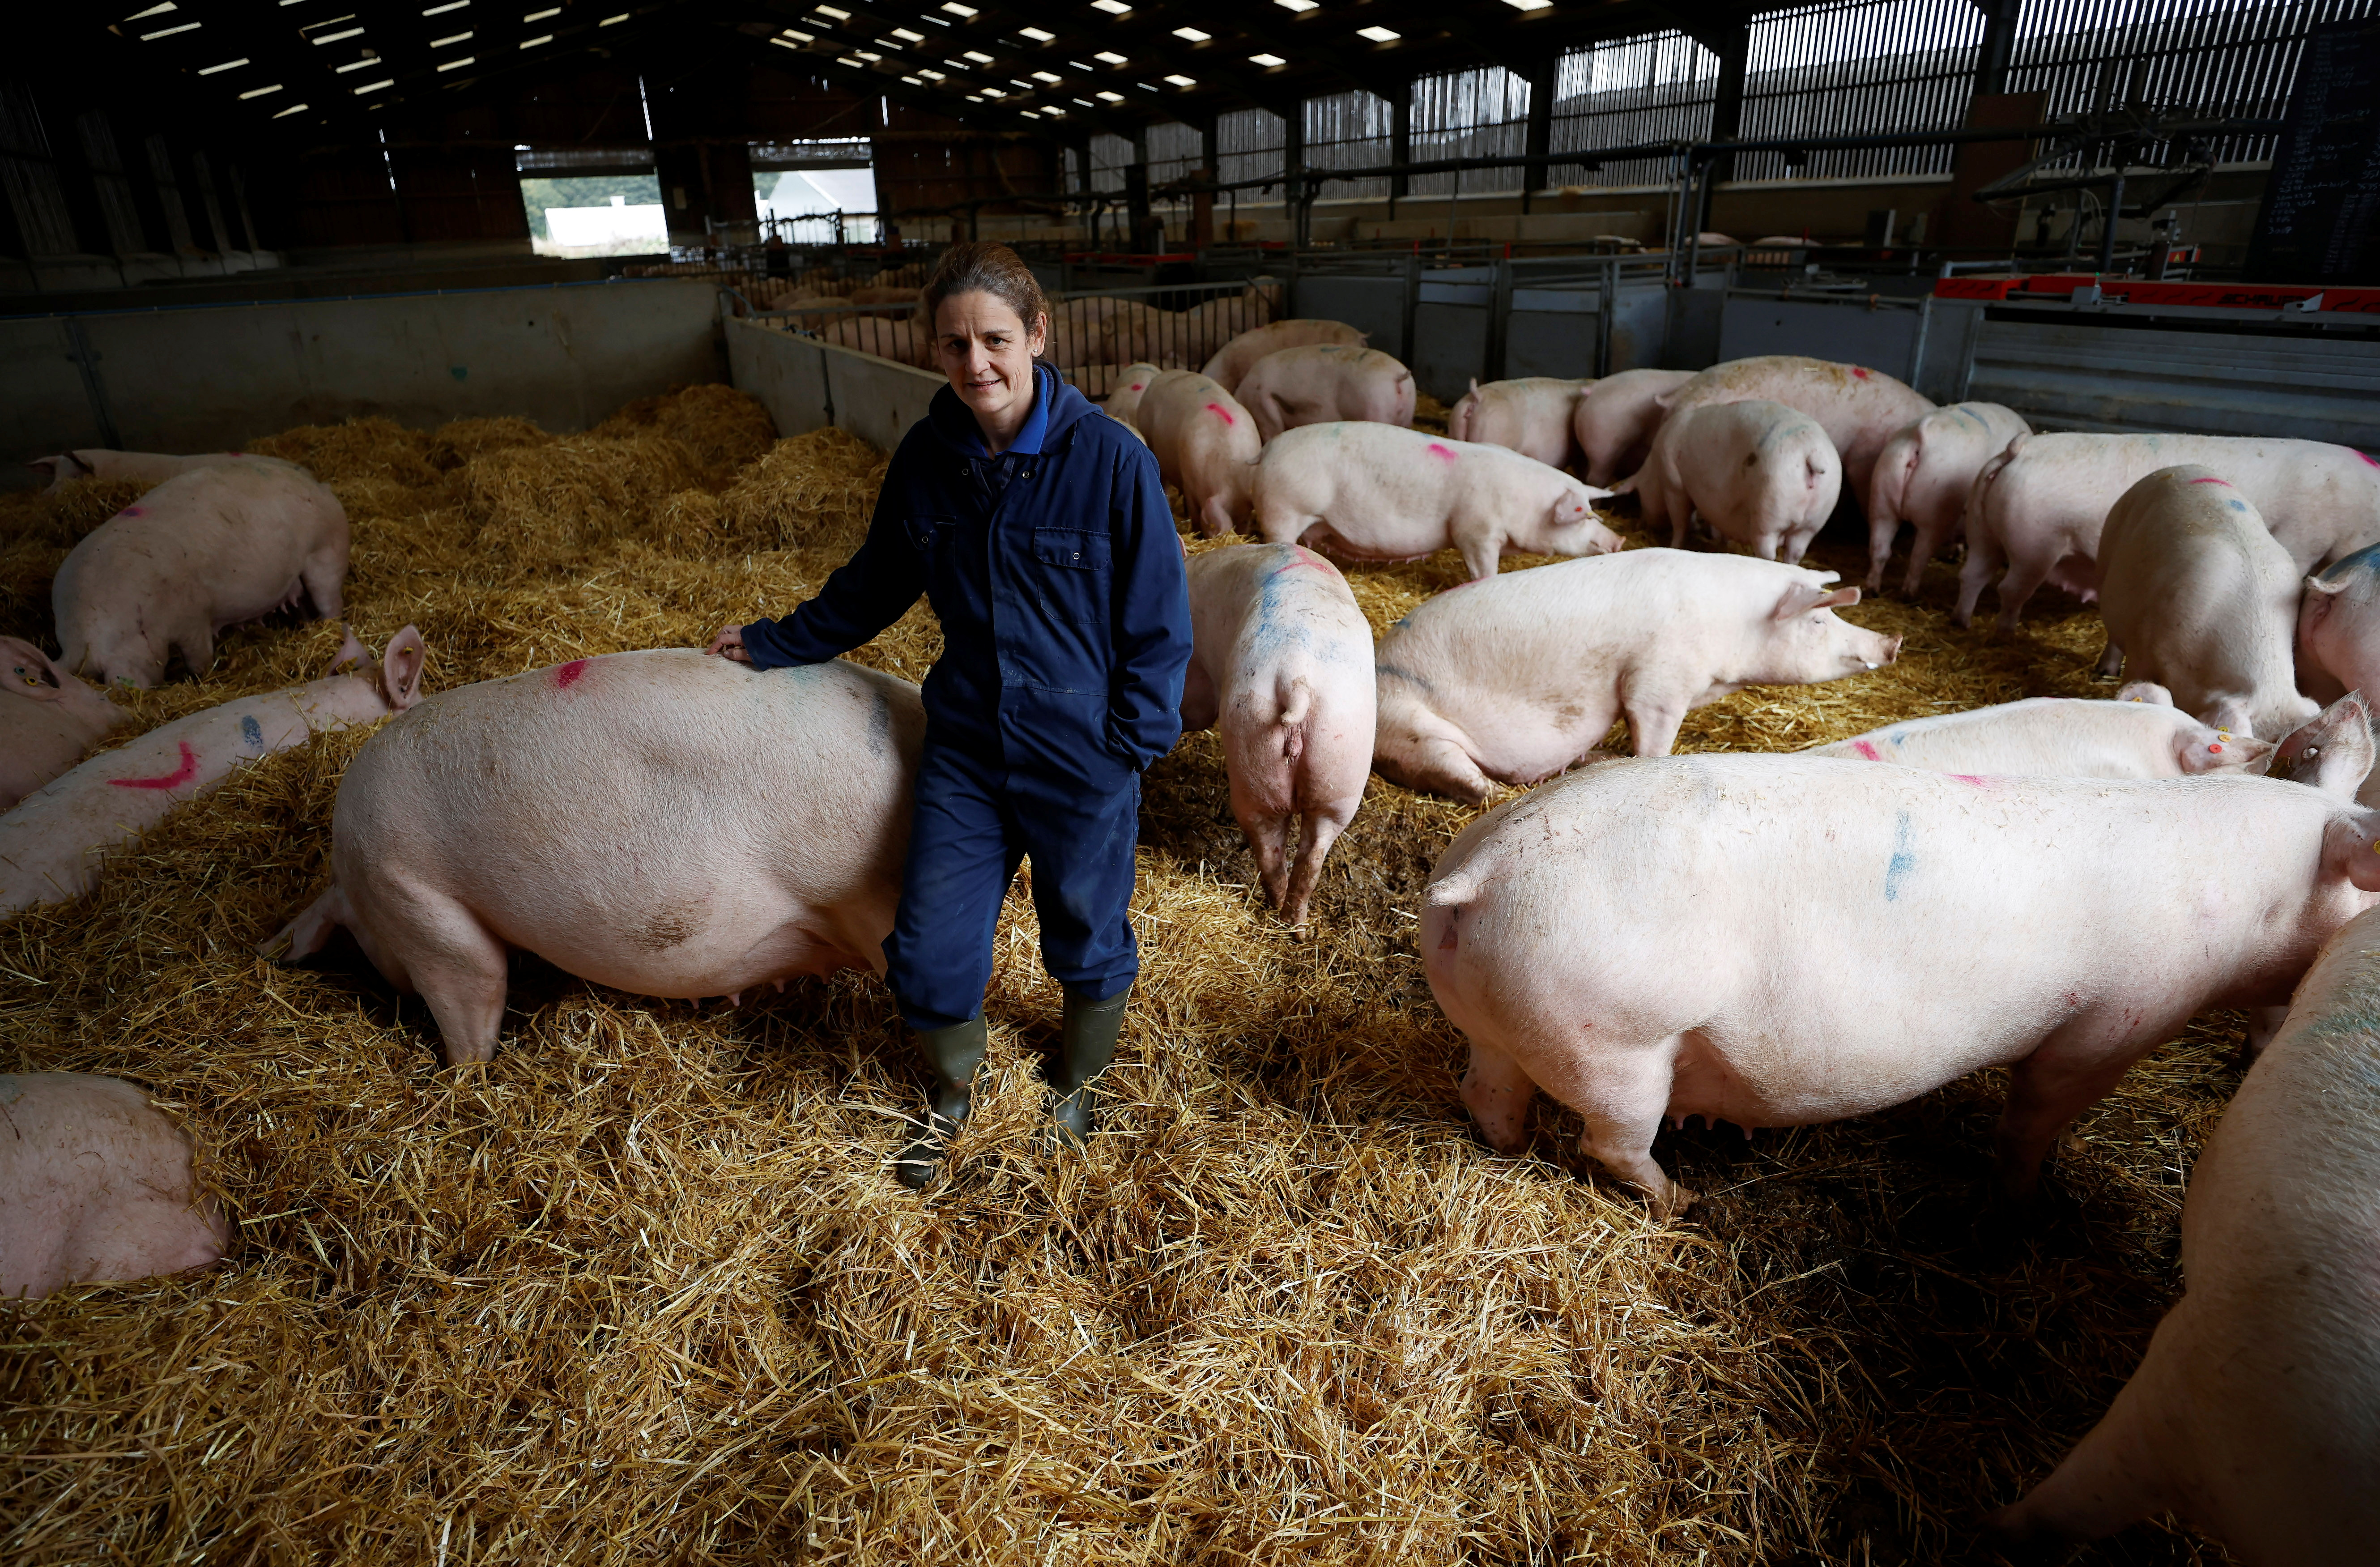 Farmer Kate Morgan stands with some of her breeding sows on her family pig farm near Driffield, Britain, October 12, 2021. REUTERS/Phil Noble